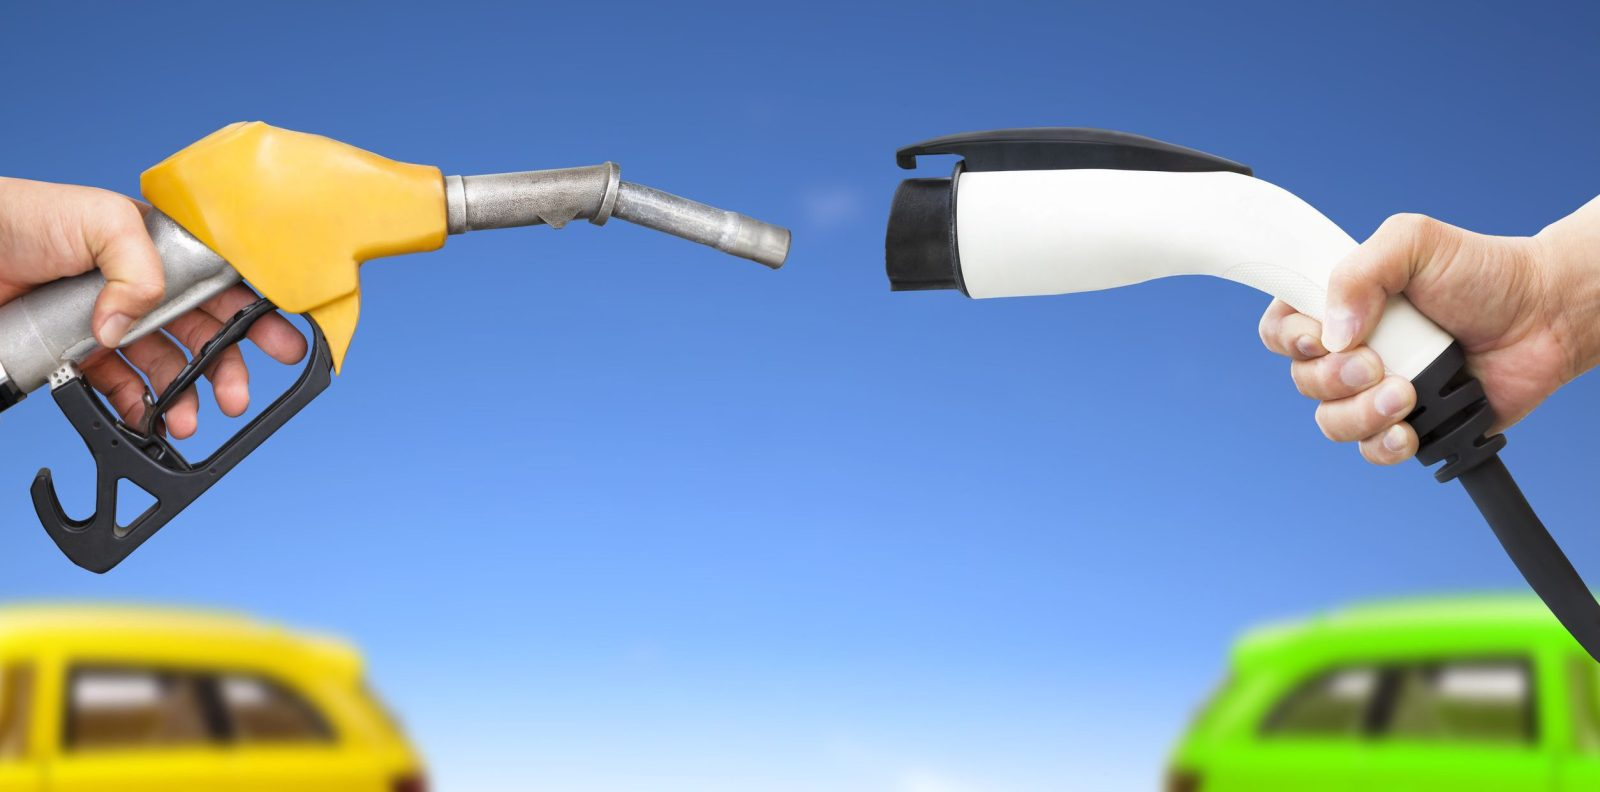 Petrol ban: Consequences for the fuel sector?